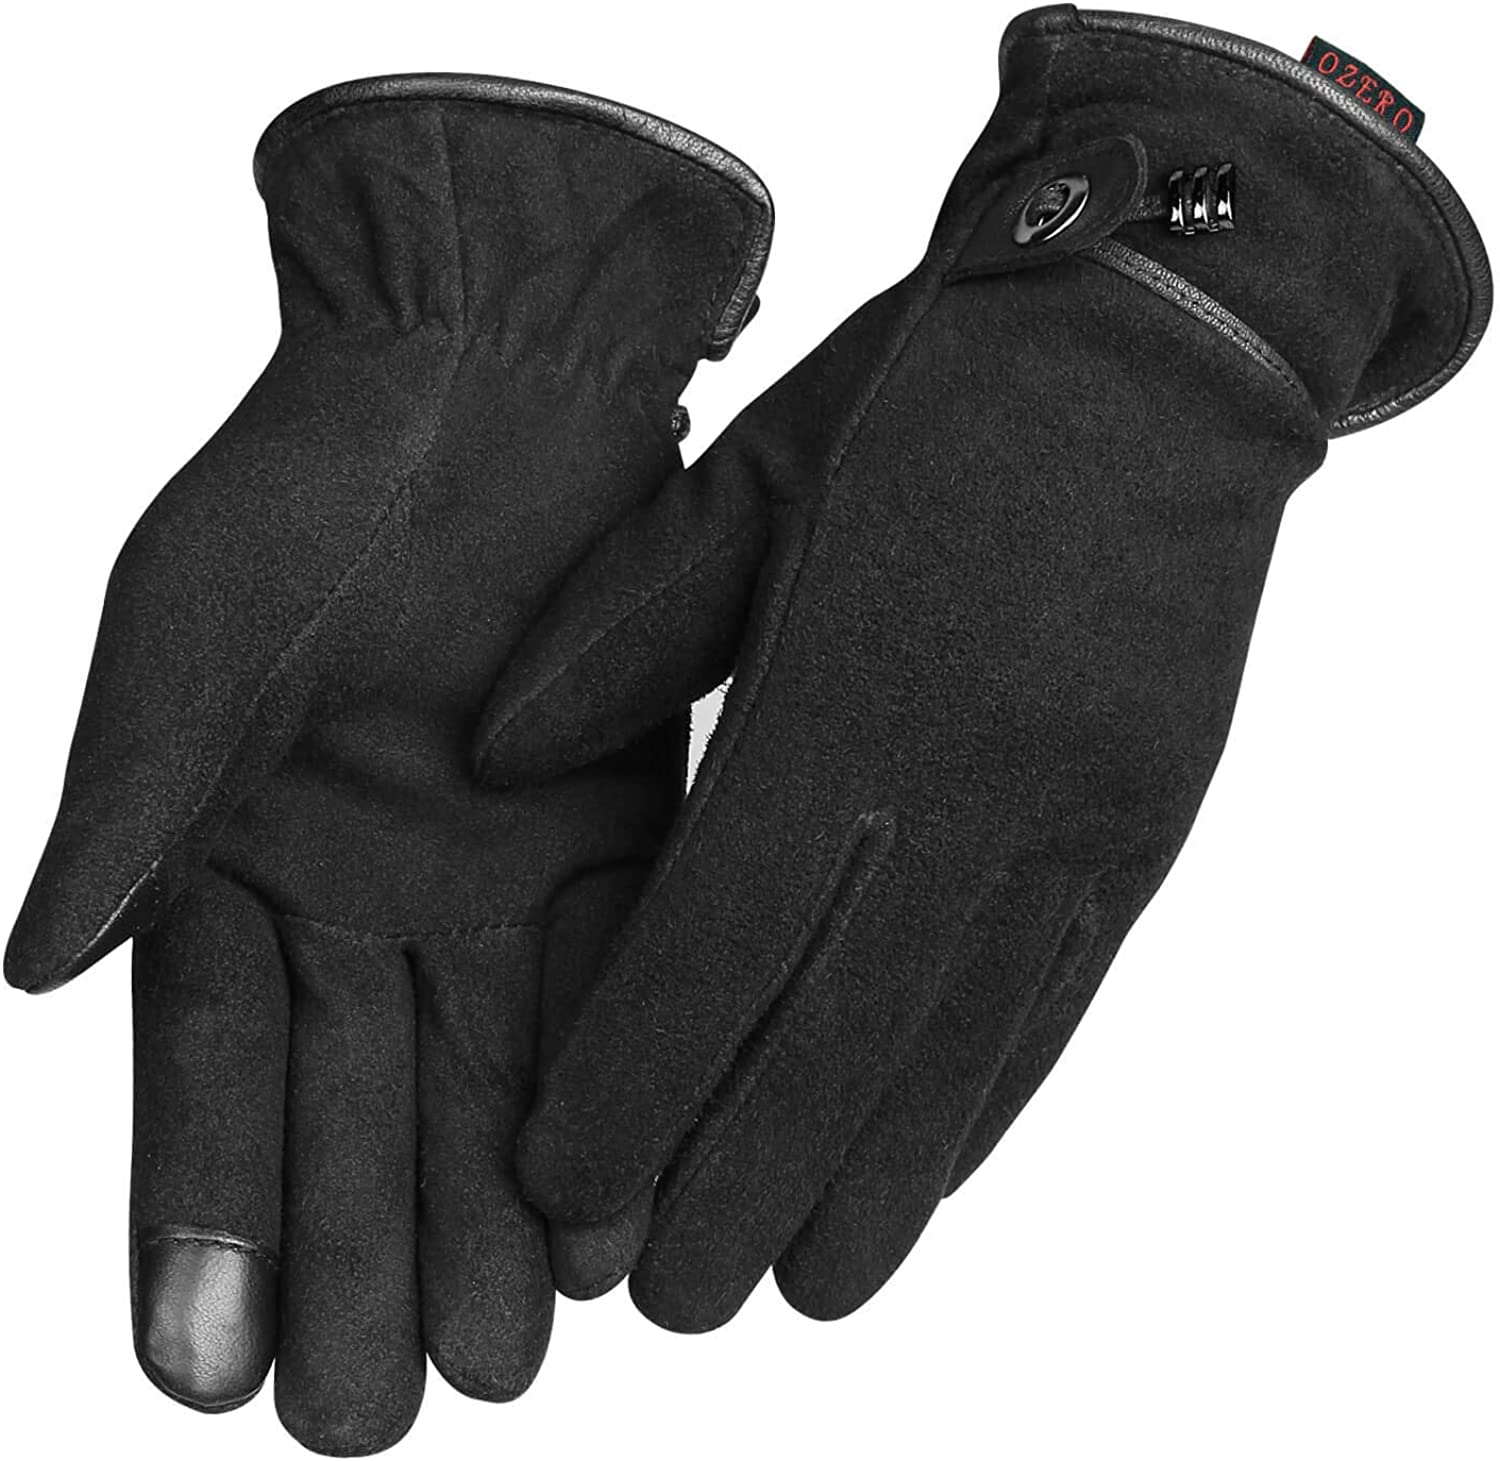 Women Winter Gloves,Womens Touch Screen Thermal Gloves for Running,Cycling,Black